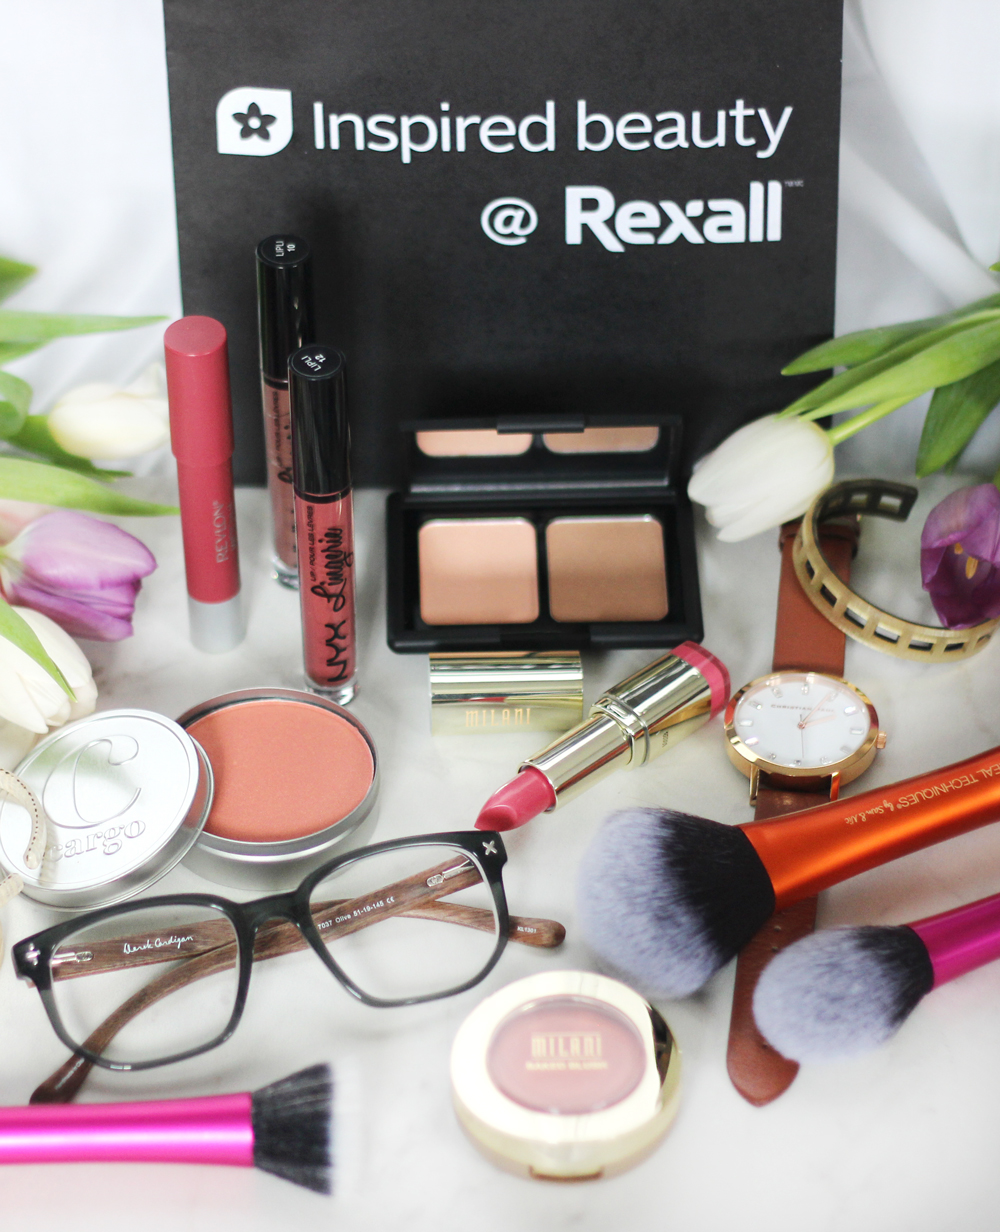 Beauty favourites from Rexall Inspired Beauty Department